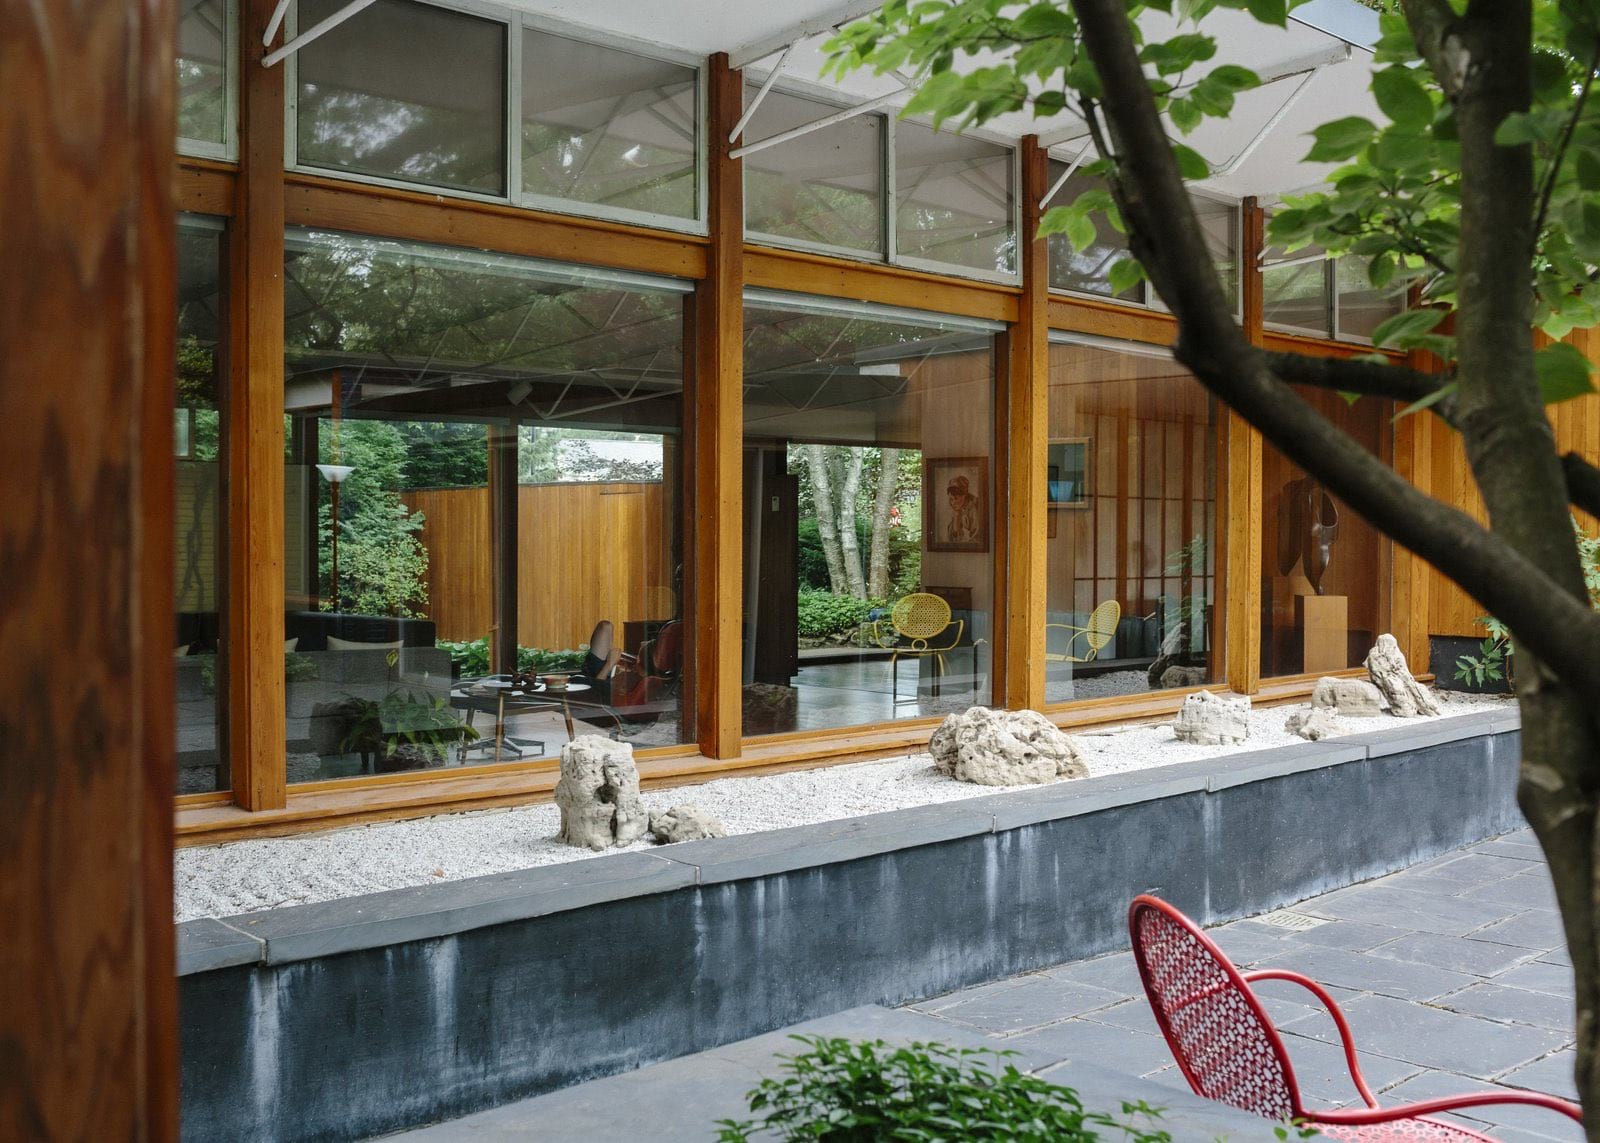 Alexander Girard residence In Michigan - back garden view